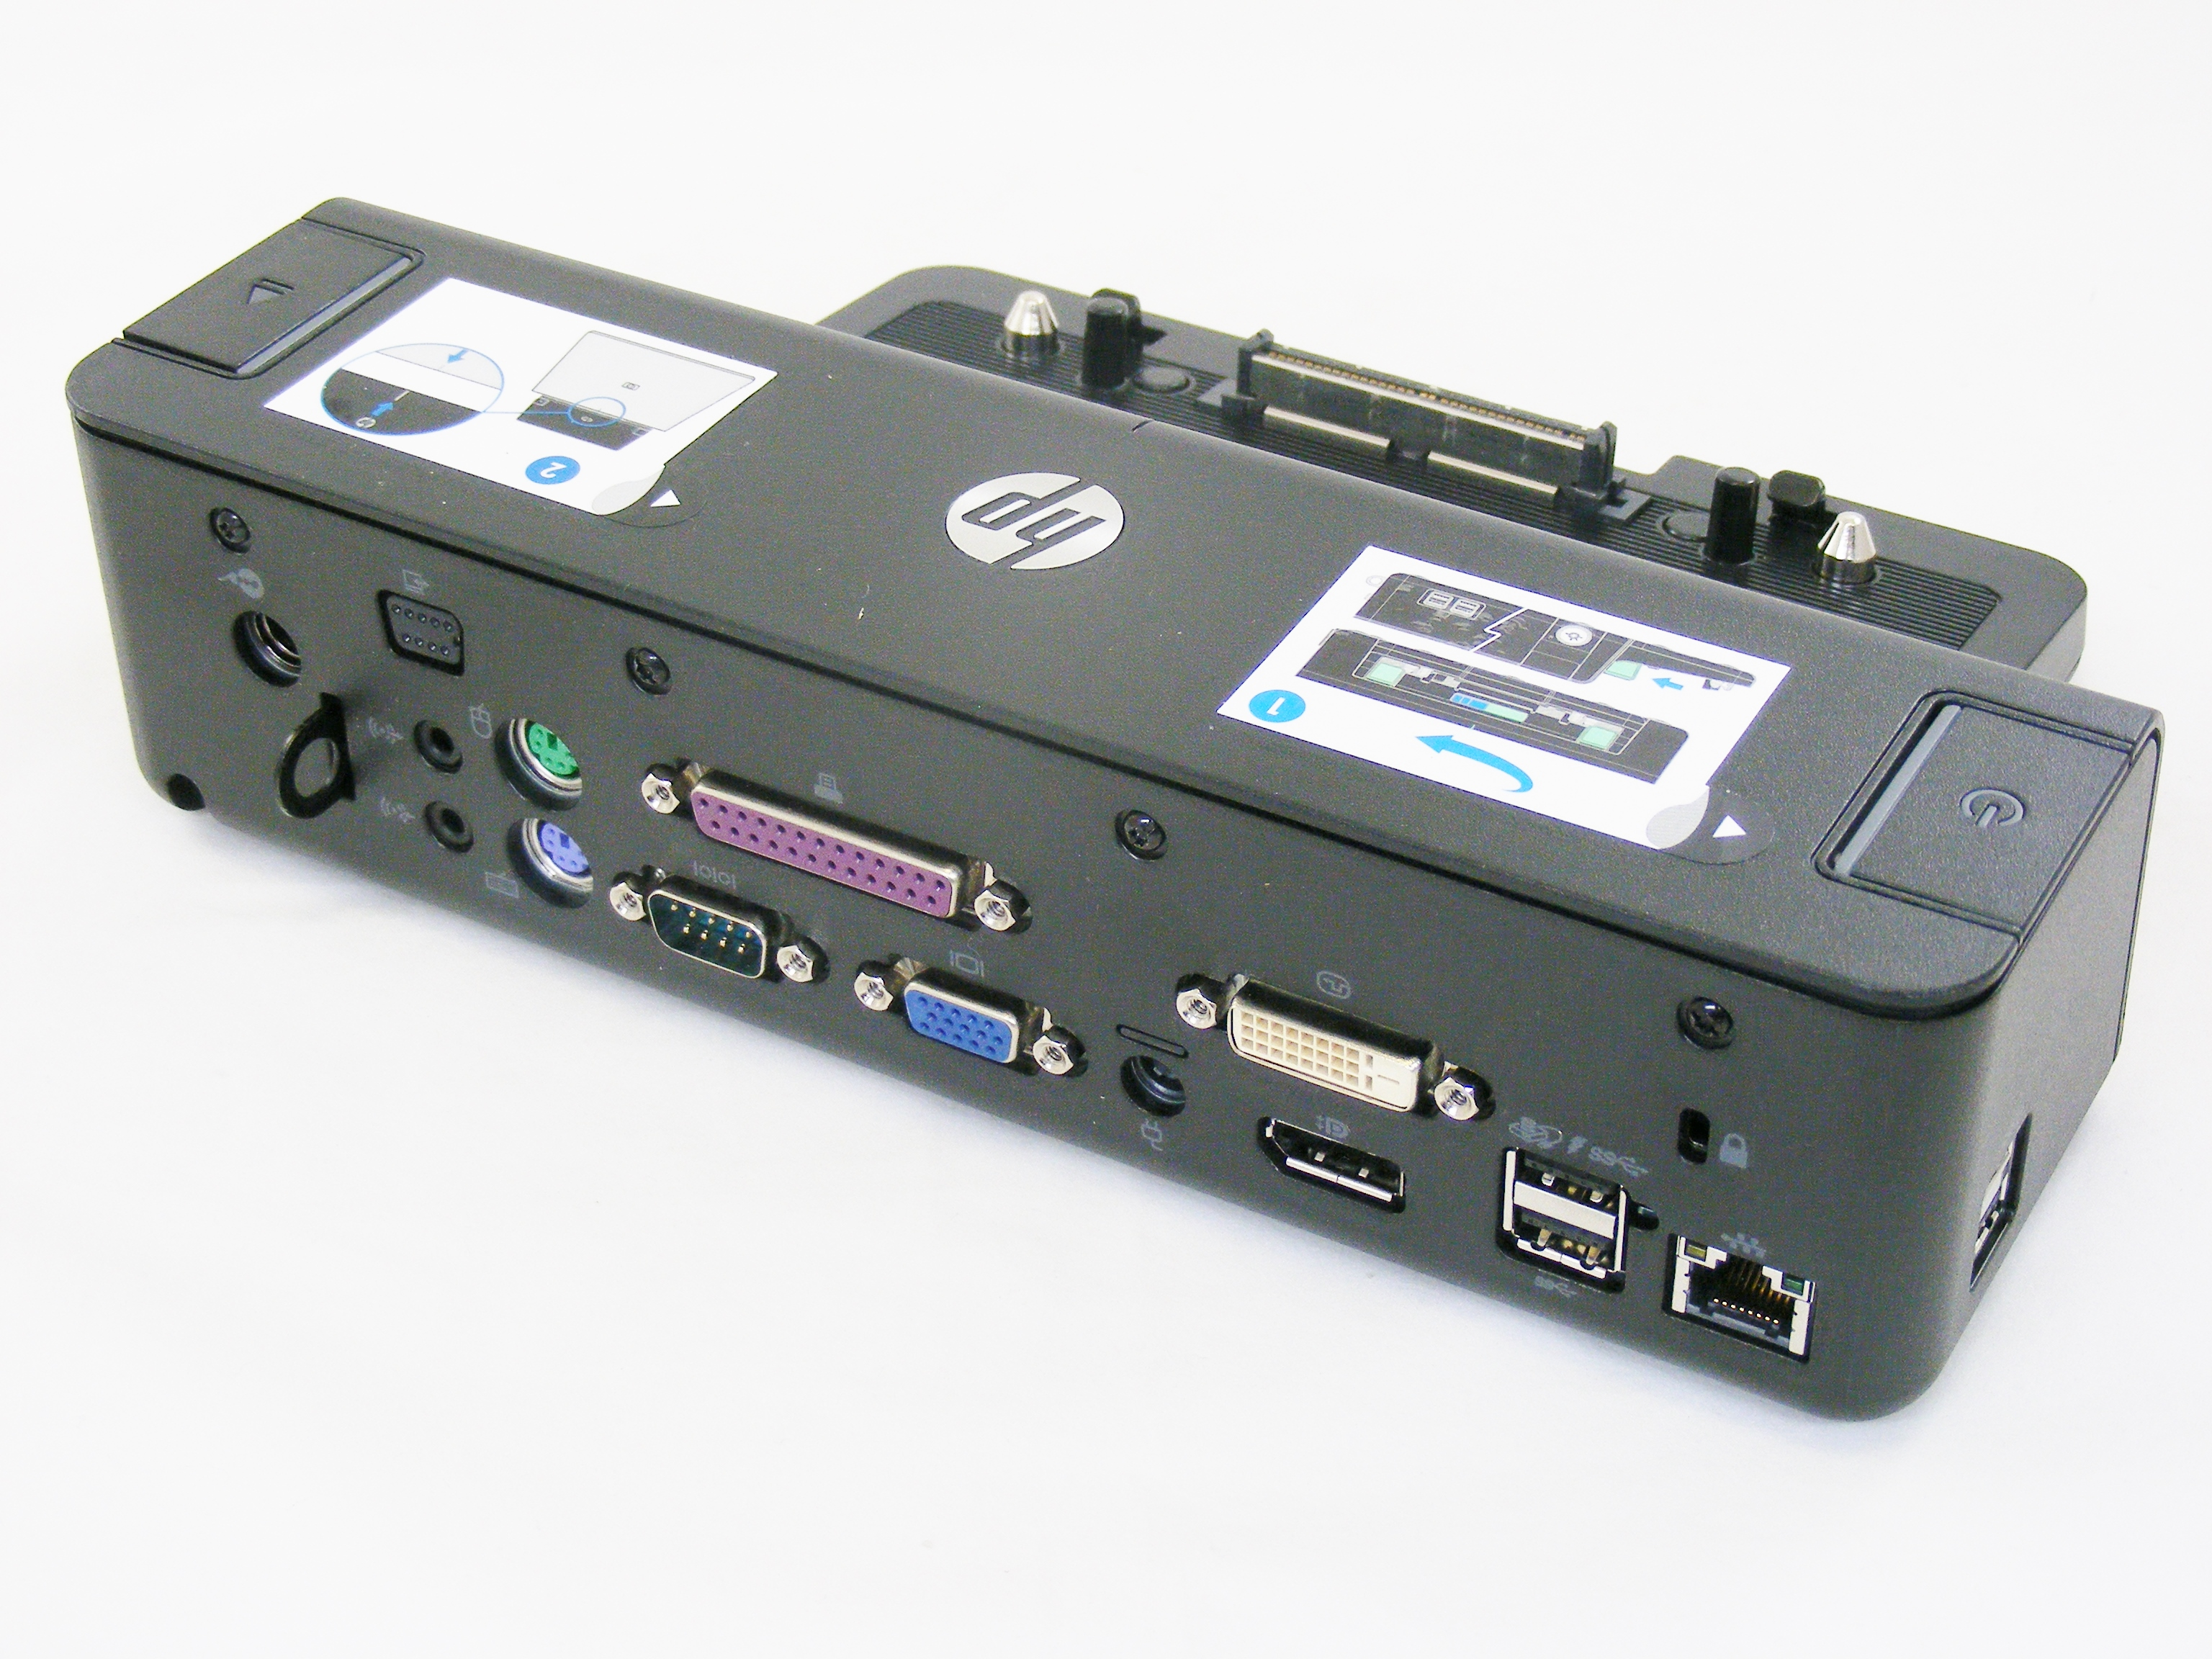 new hp elitebook 8530p 8530w 8770w usb 3 0 dock docking. Black Bedroom Furniture Sets. Home Design Ideas